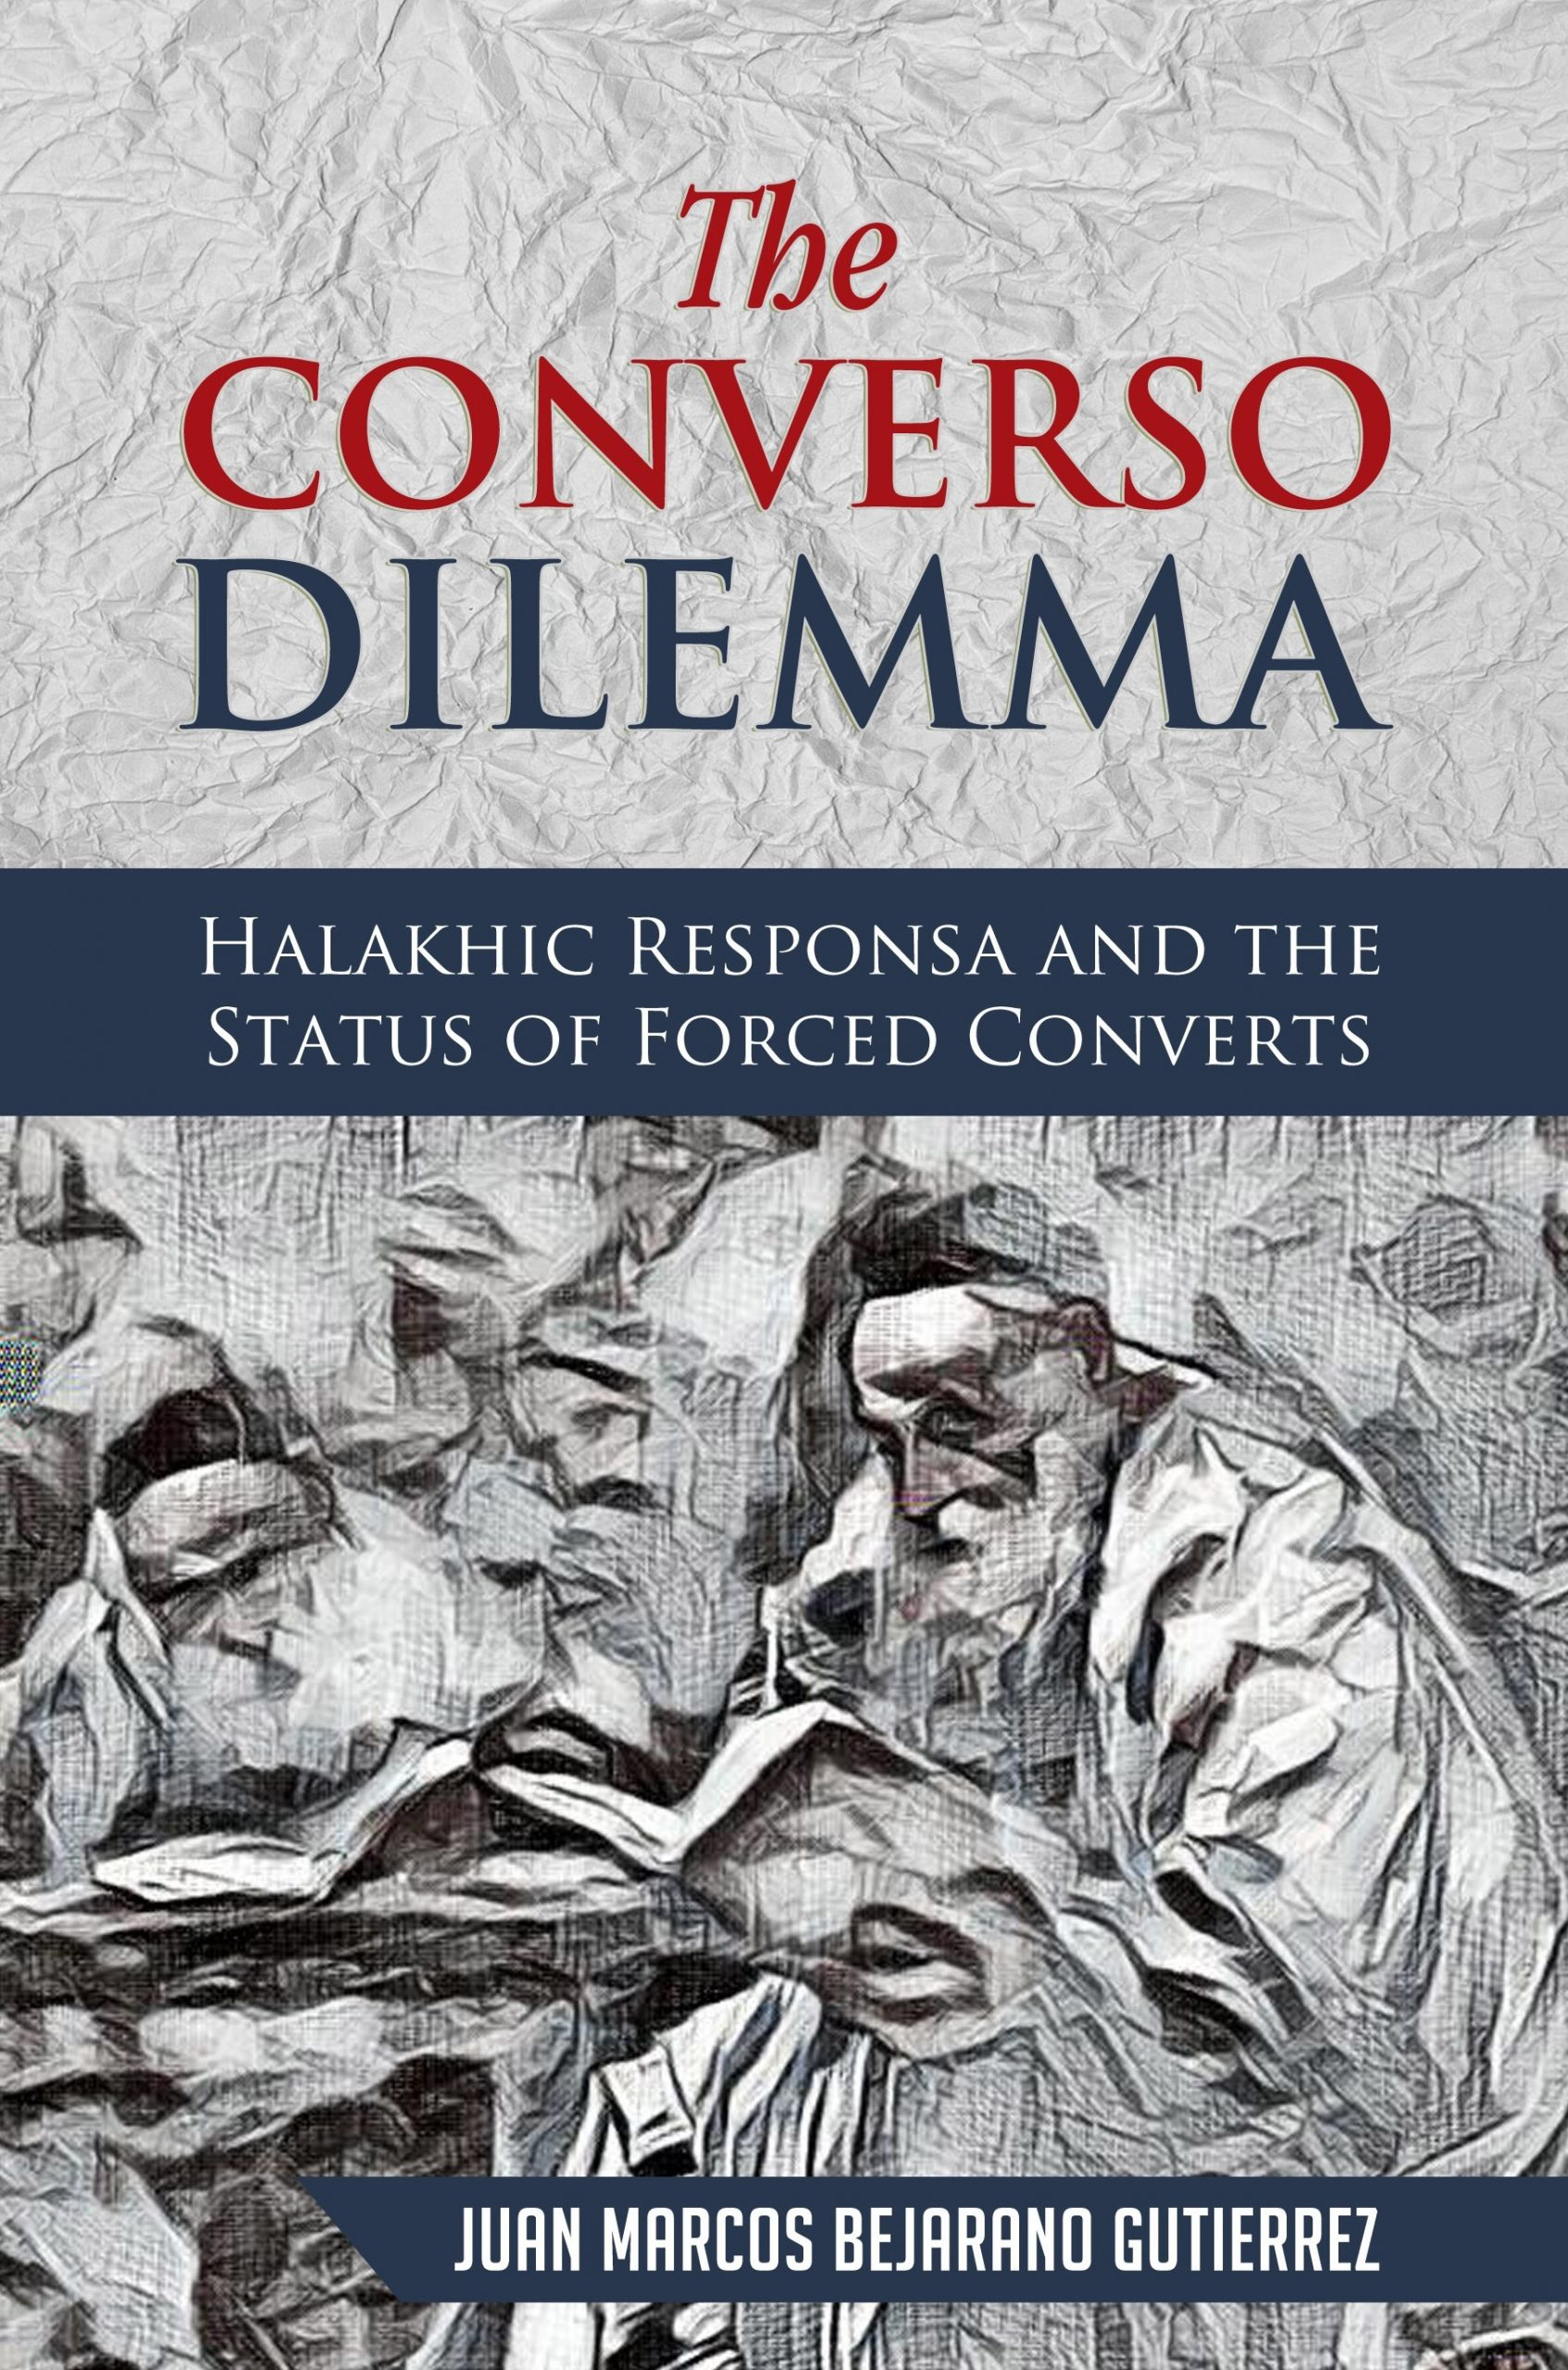 The Converso Dilemma